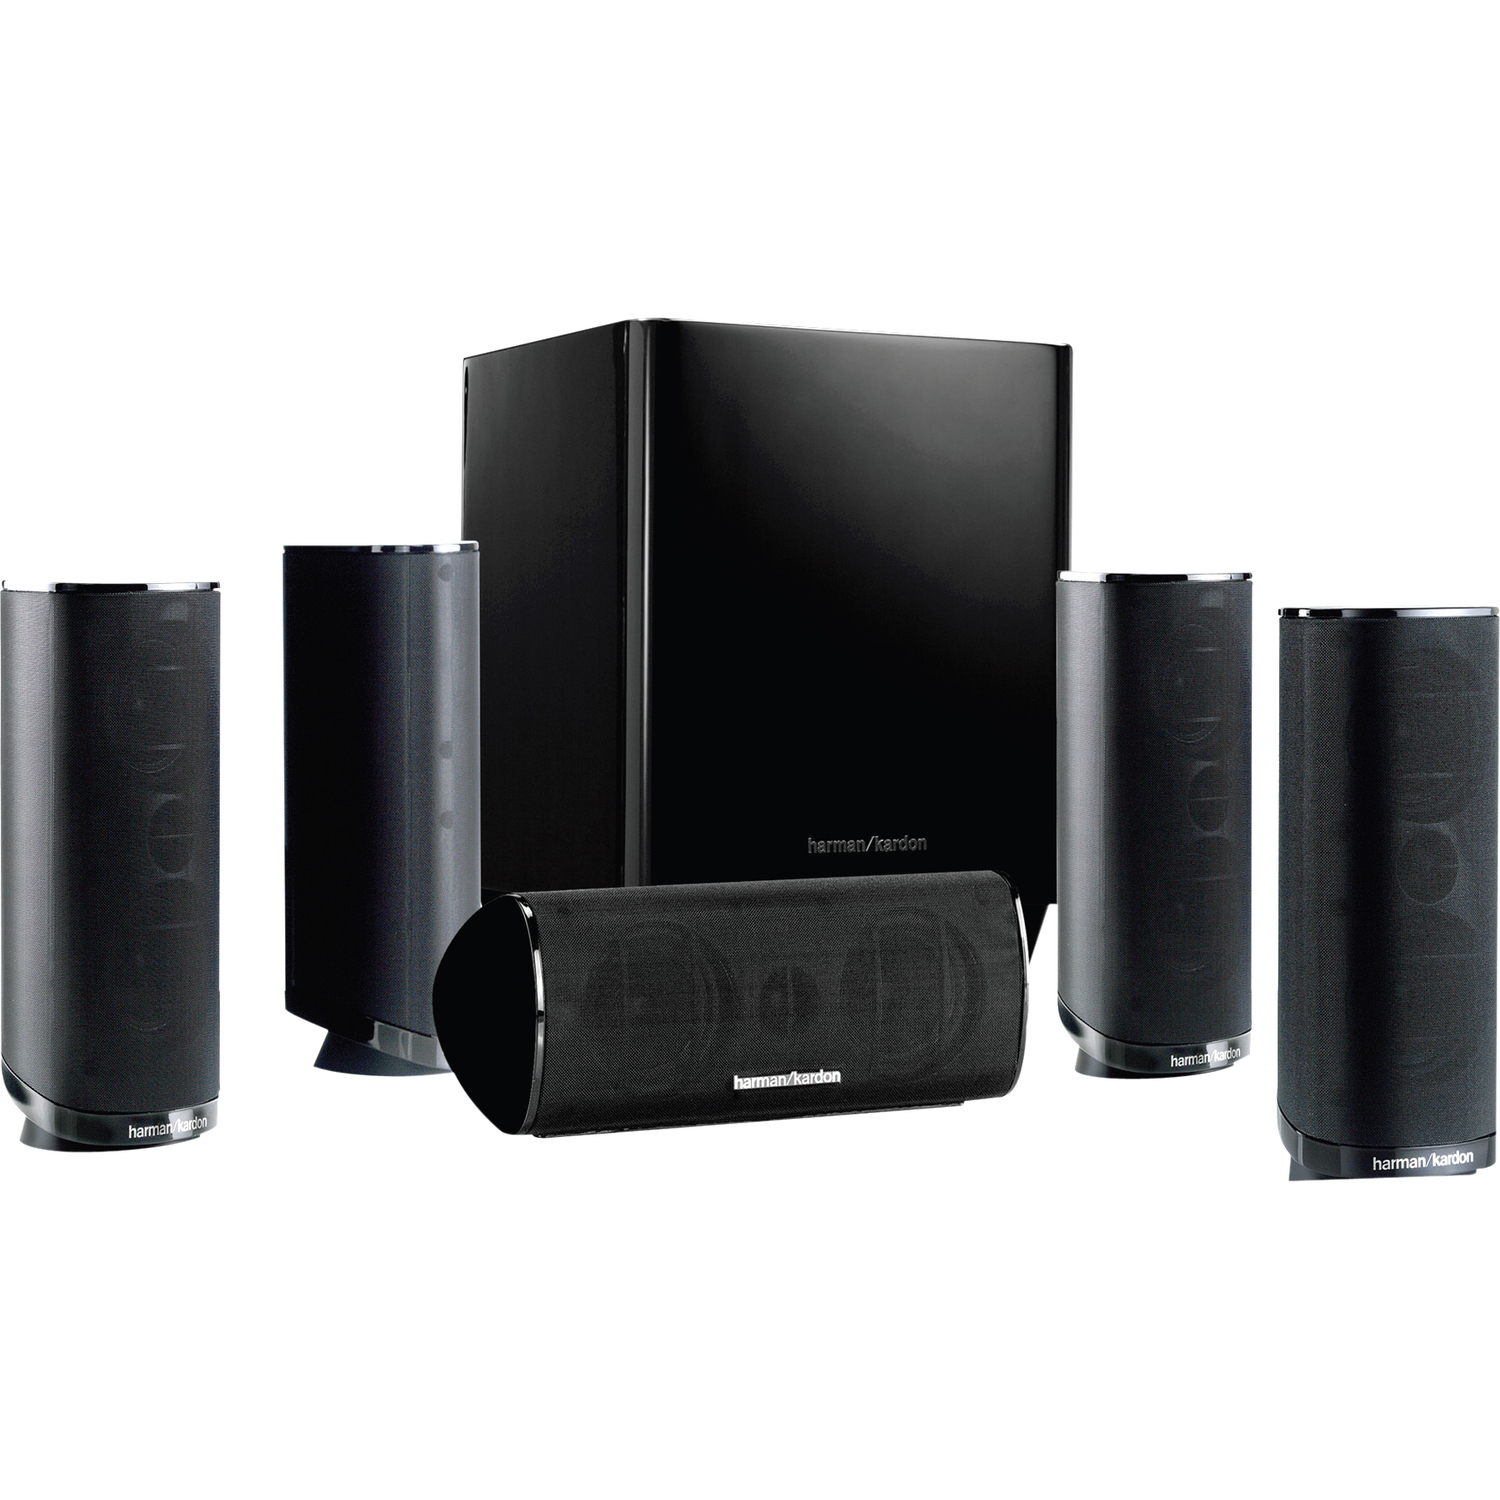 Harman Kardon HKTS 16 5.1-Channel Home Theater Speaker System Black